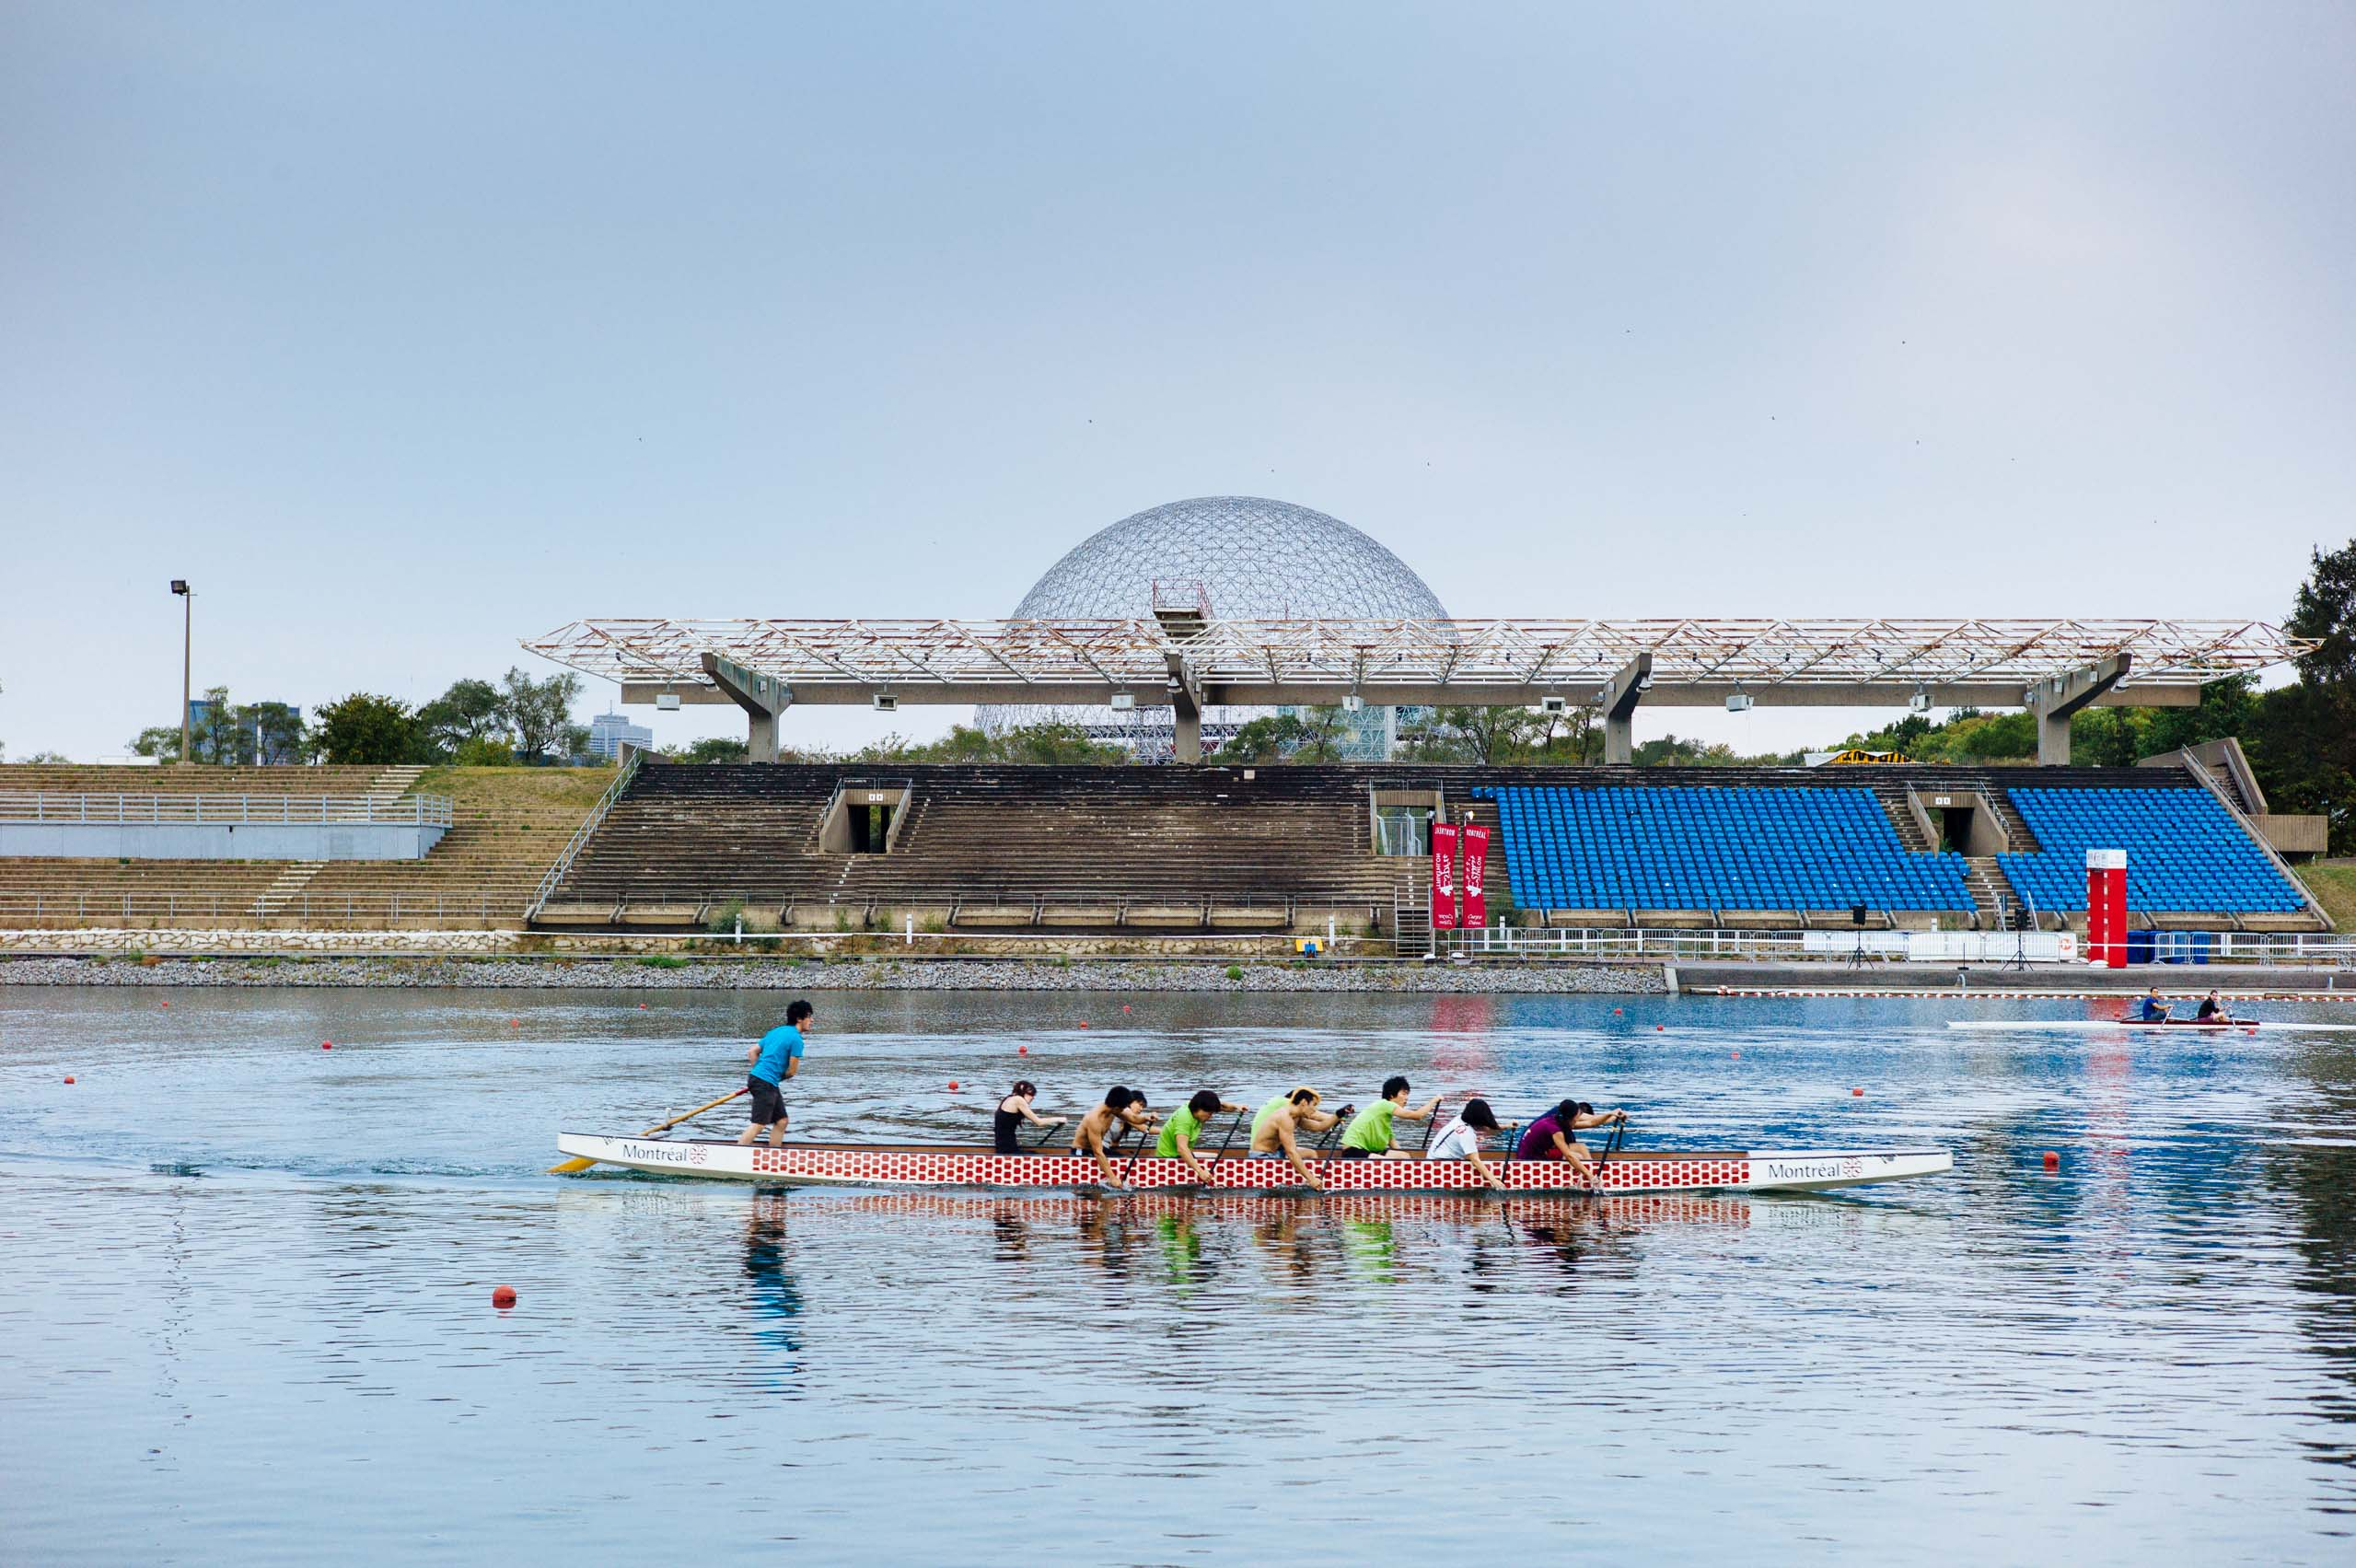 A group of rowers at the Olympic Basin in Montreal, host of the 1976 Summer Olympics, photographed in September 2012. Competitions for canoe-kayaking, rowing and other sports are still held at the site.